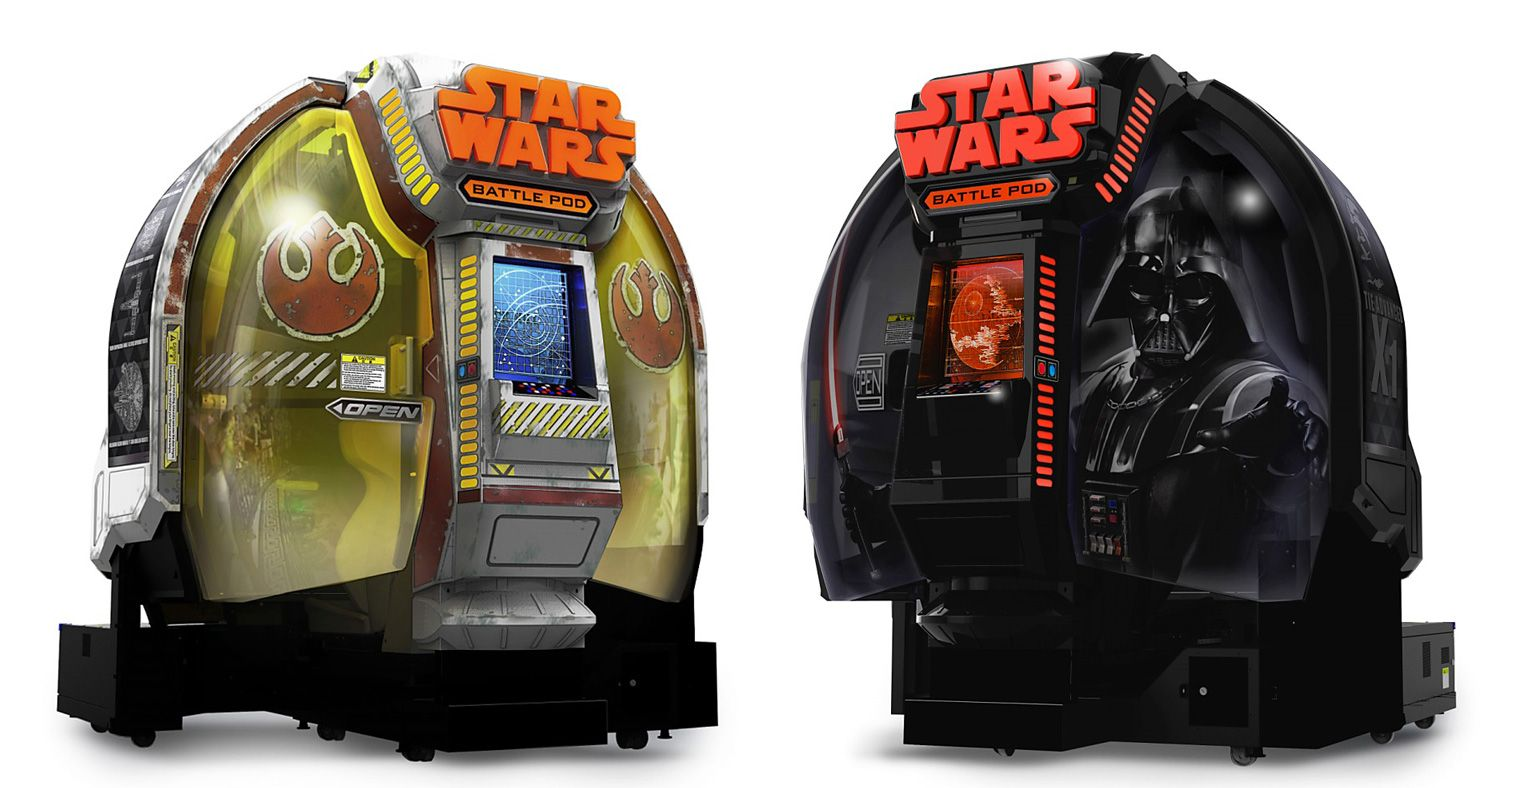 star_wars_battle_pod_arcade